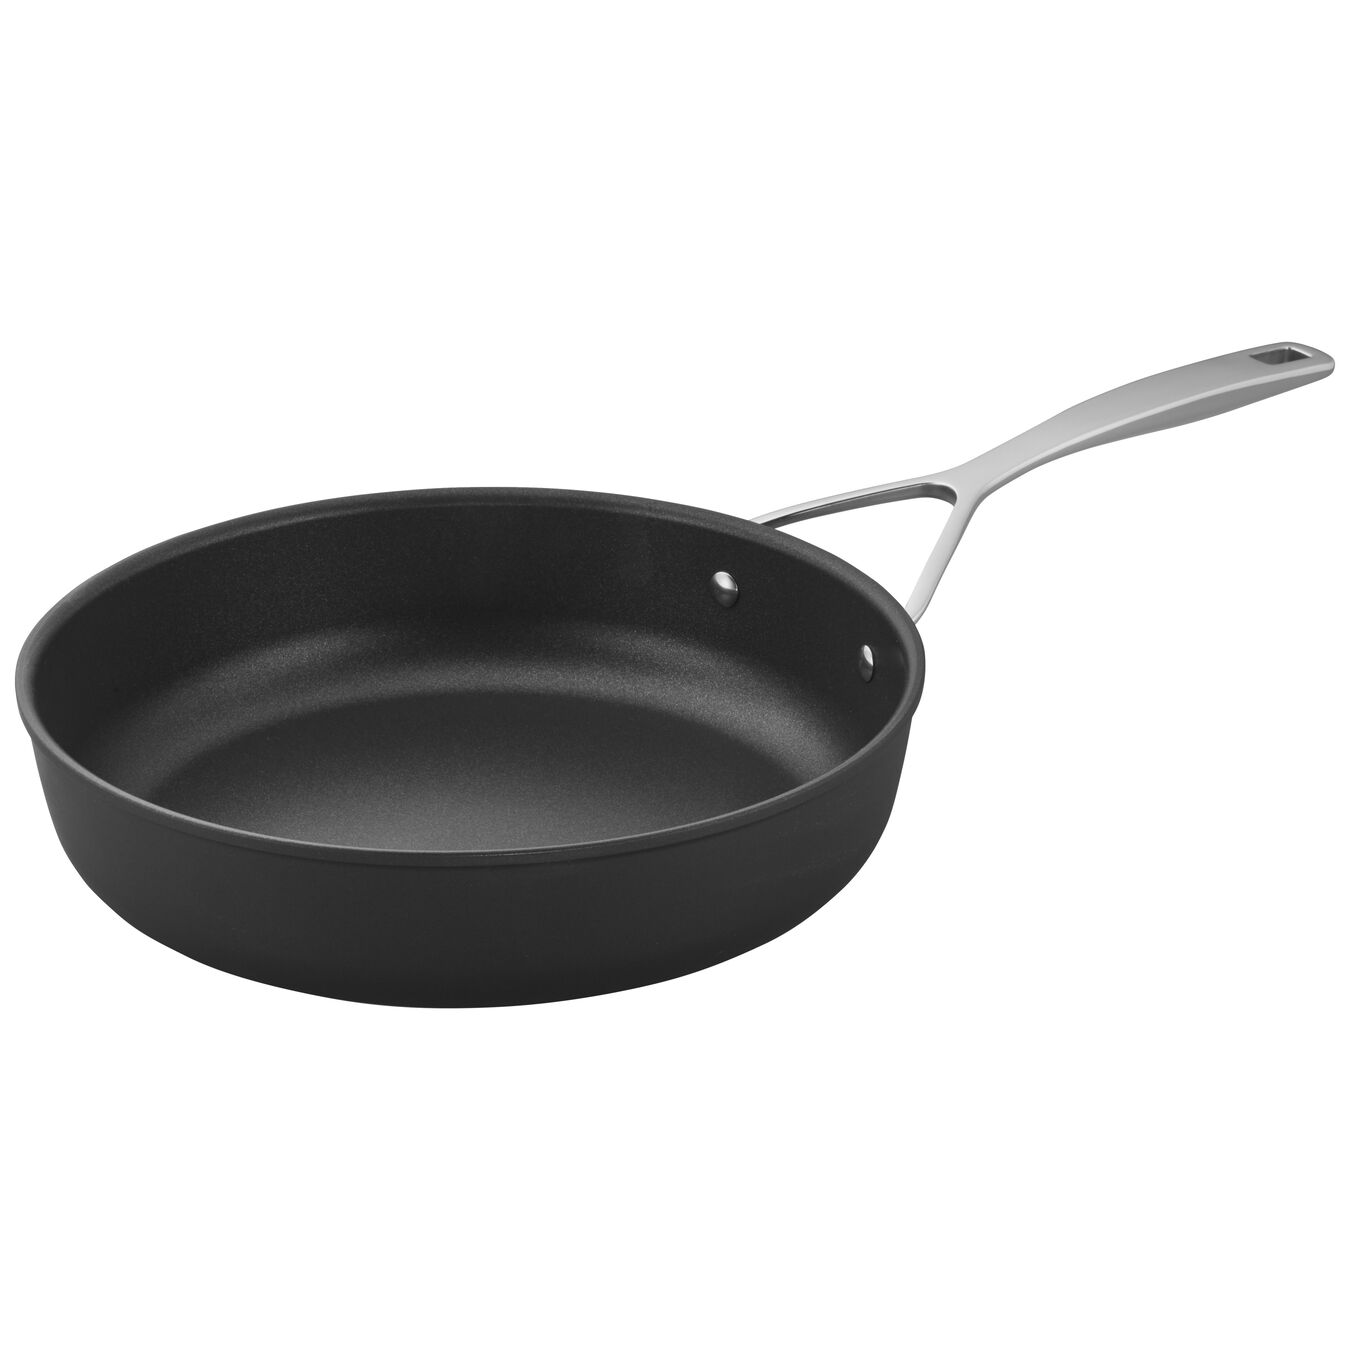 28 cm / 11 inch Aluminum Frying pan high-sided,,large 2